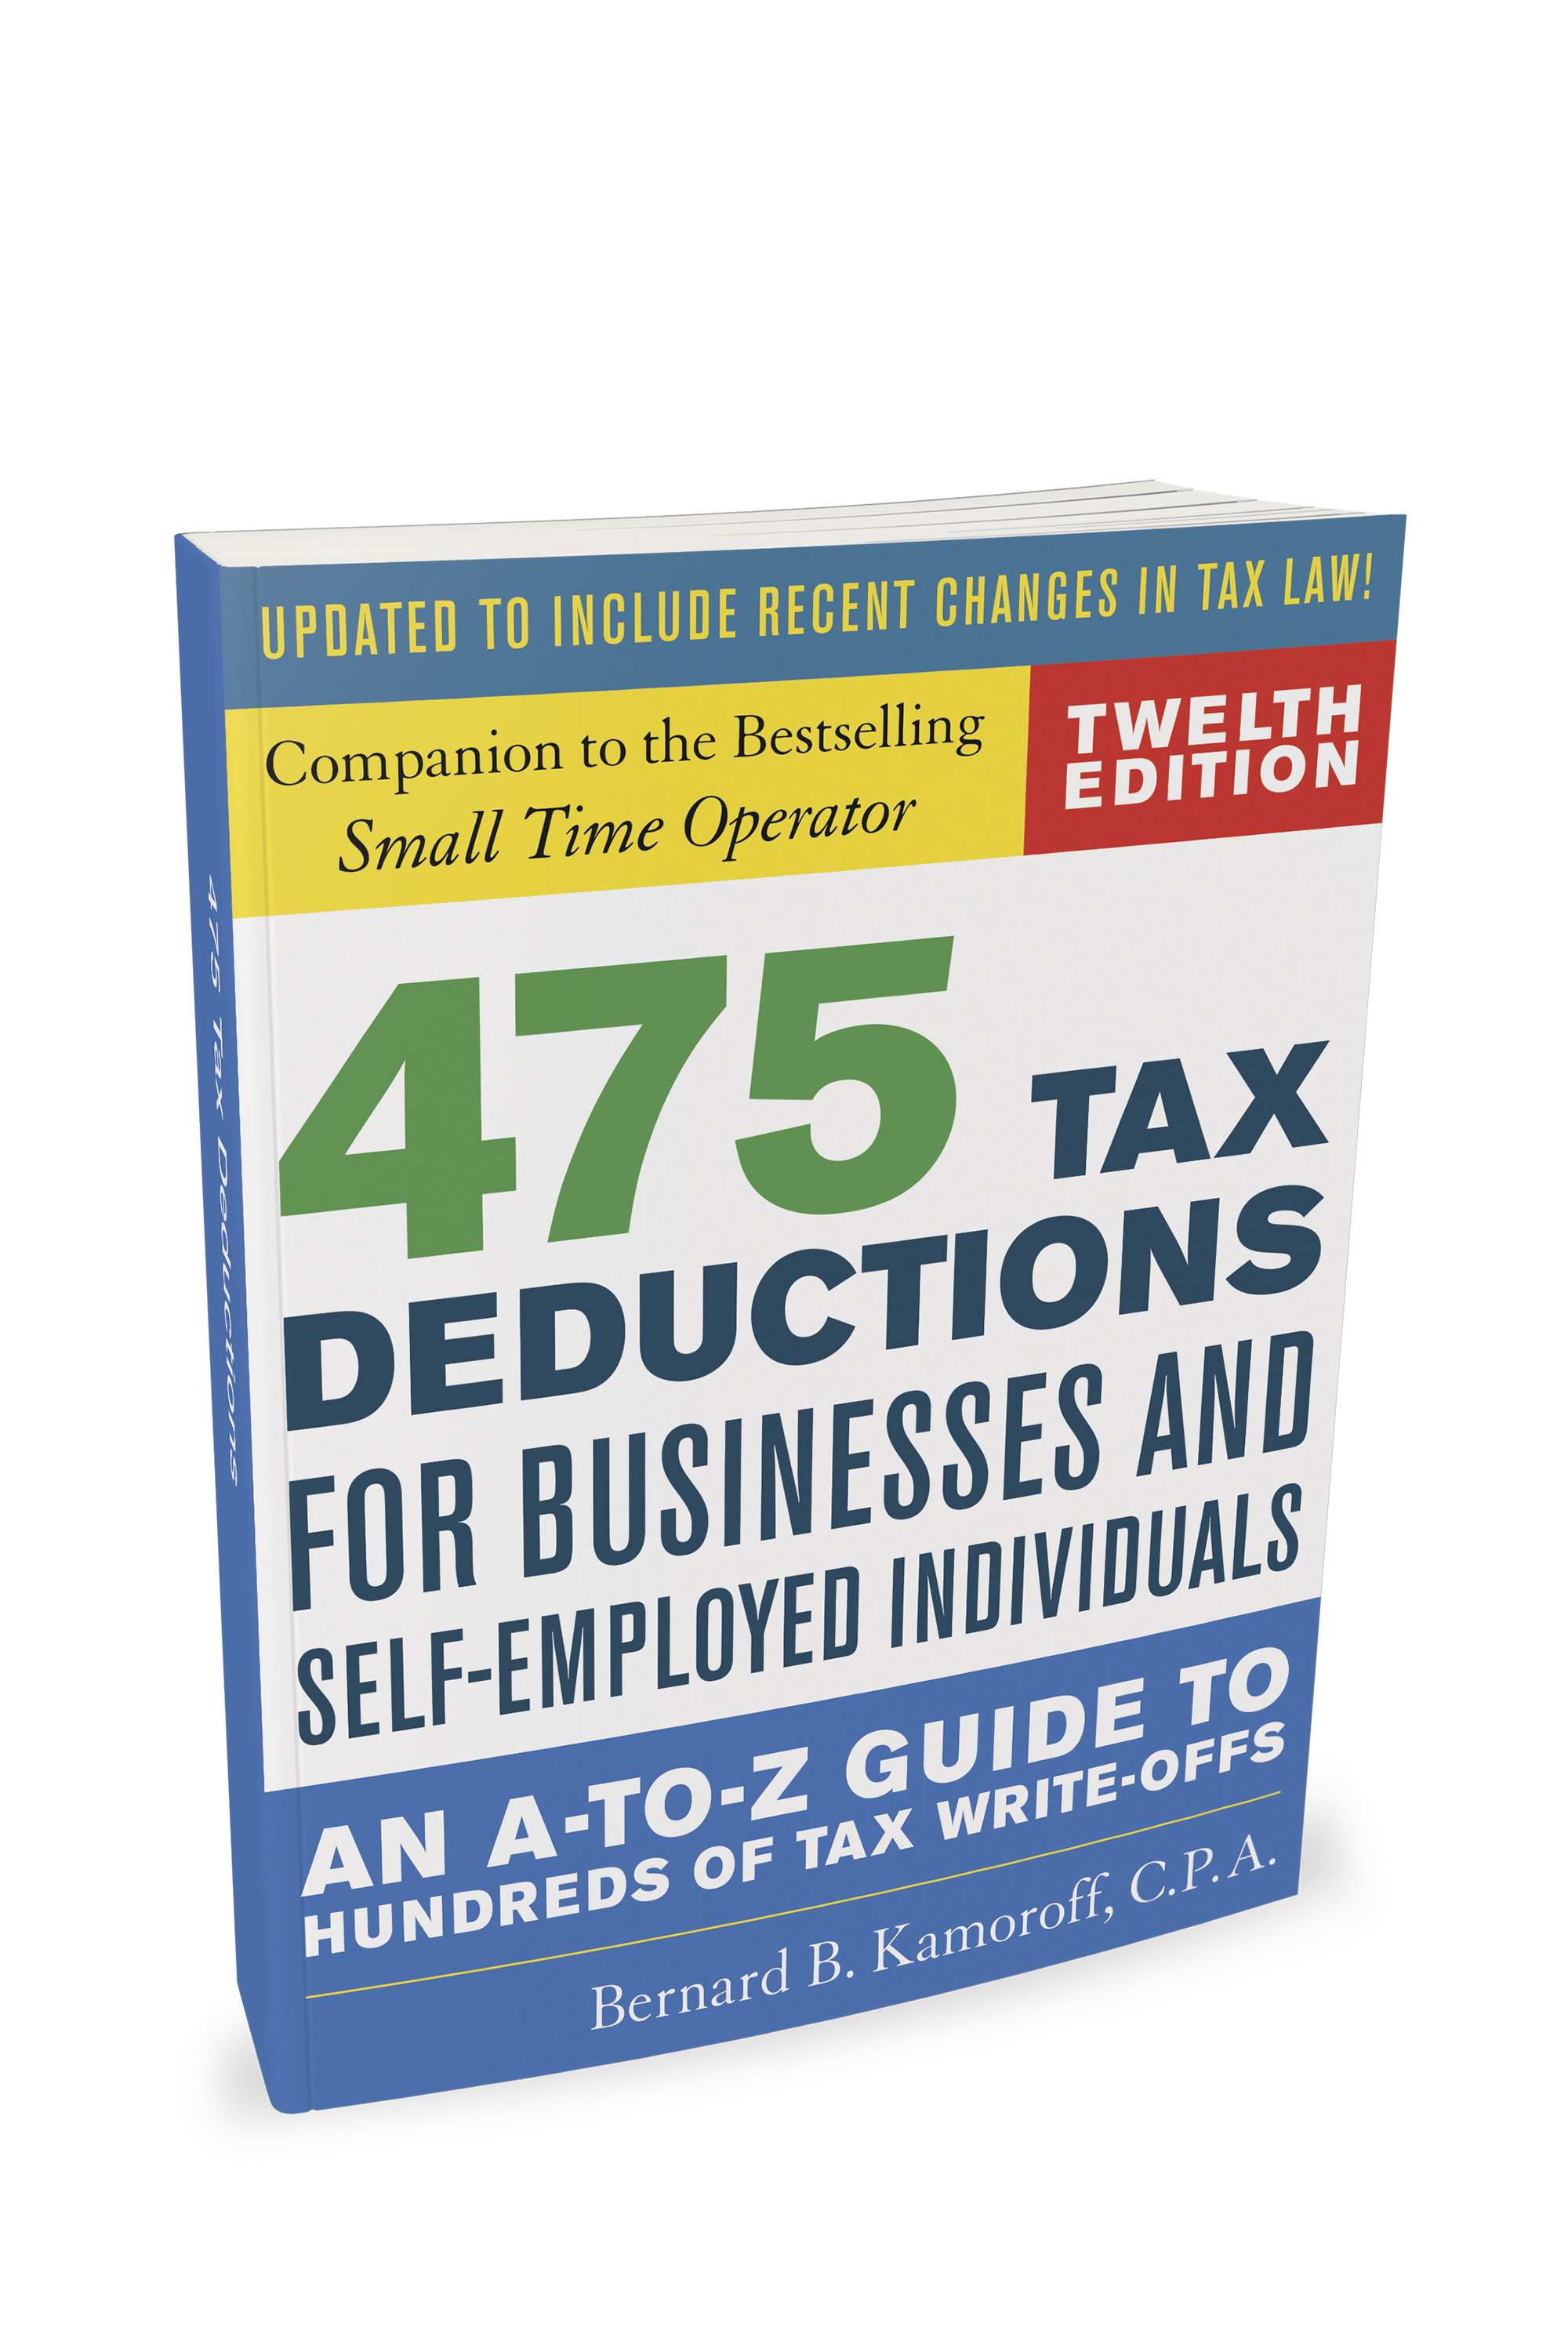 475 Tax Deductions for Businesses and Self-Employed Individuals (12th Edition) - #4757